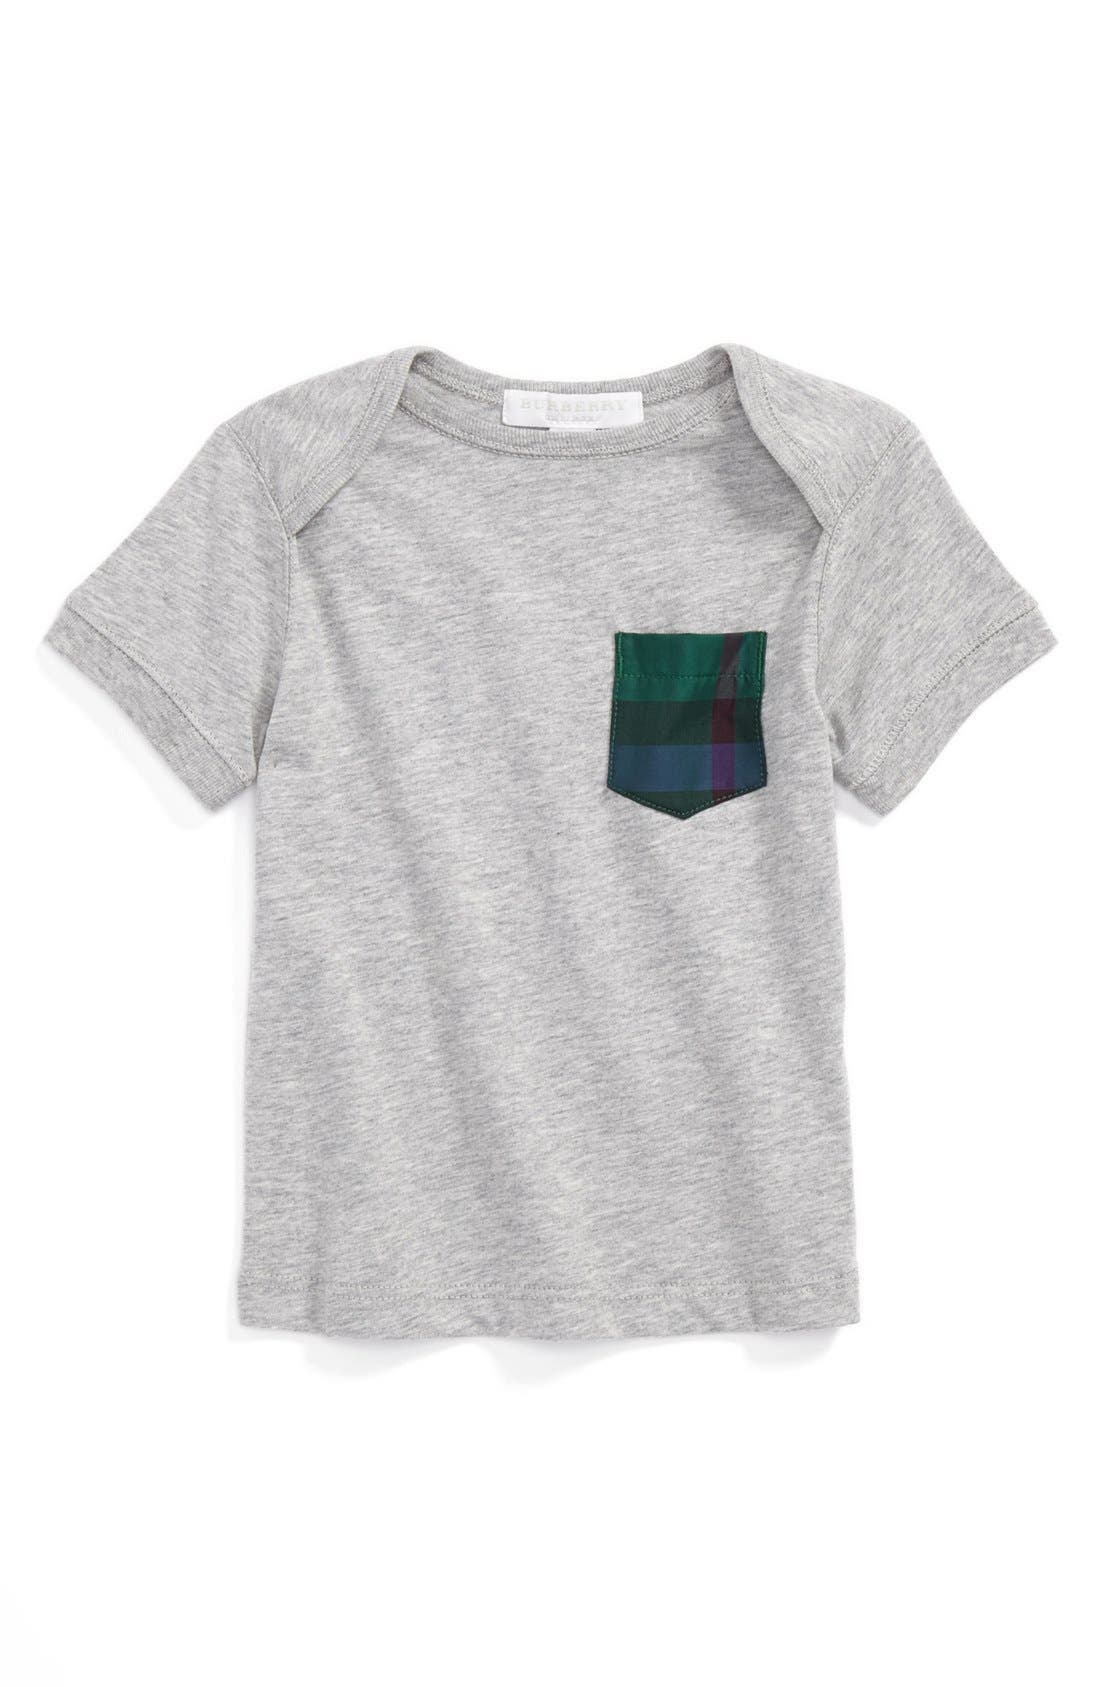 Main Image - Burberry 'Callum' T-Shirt (Baby Boys)